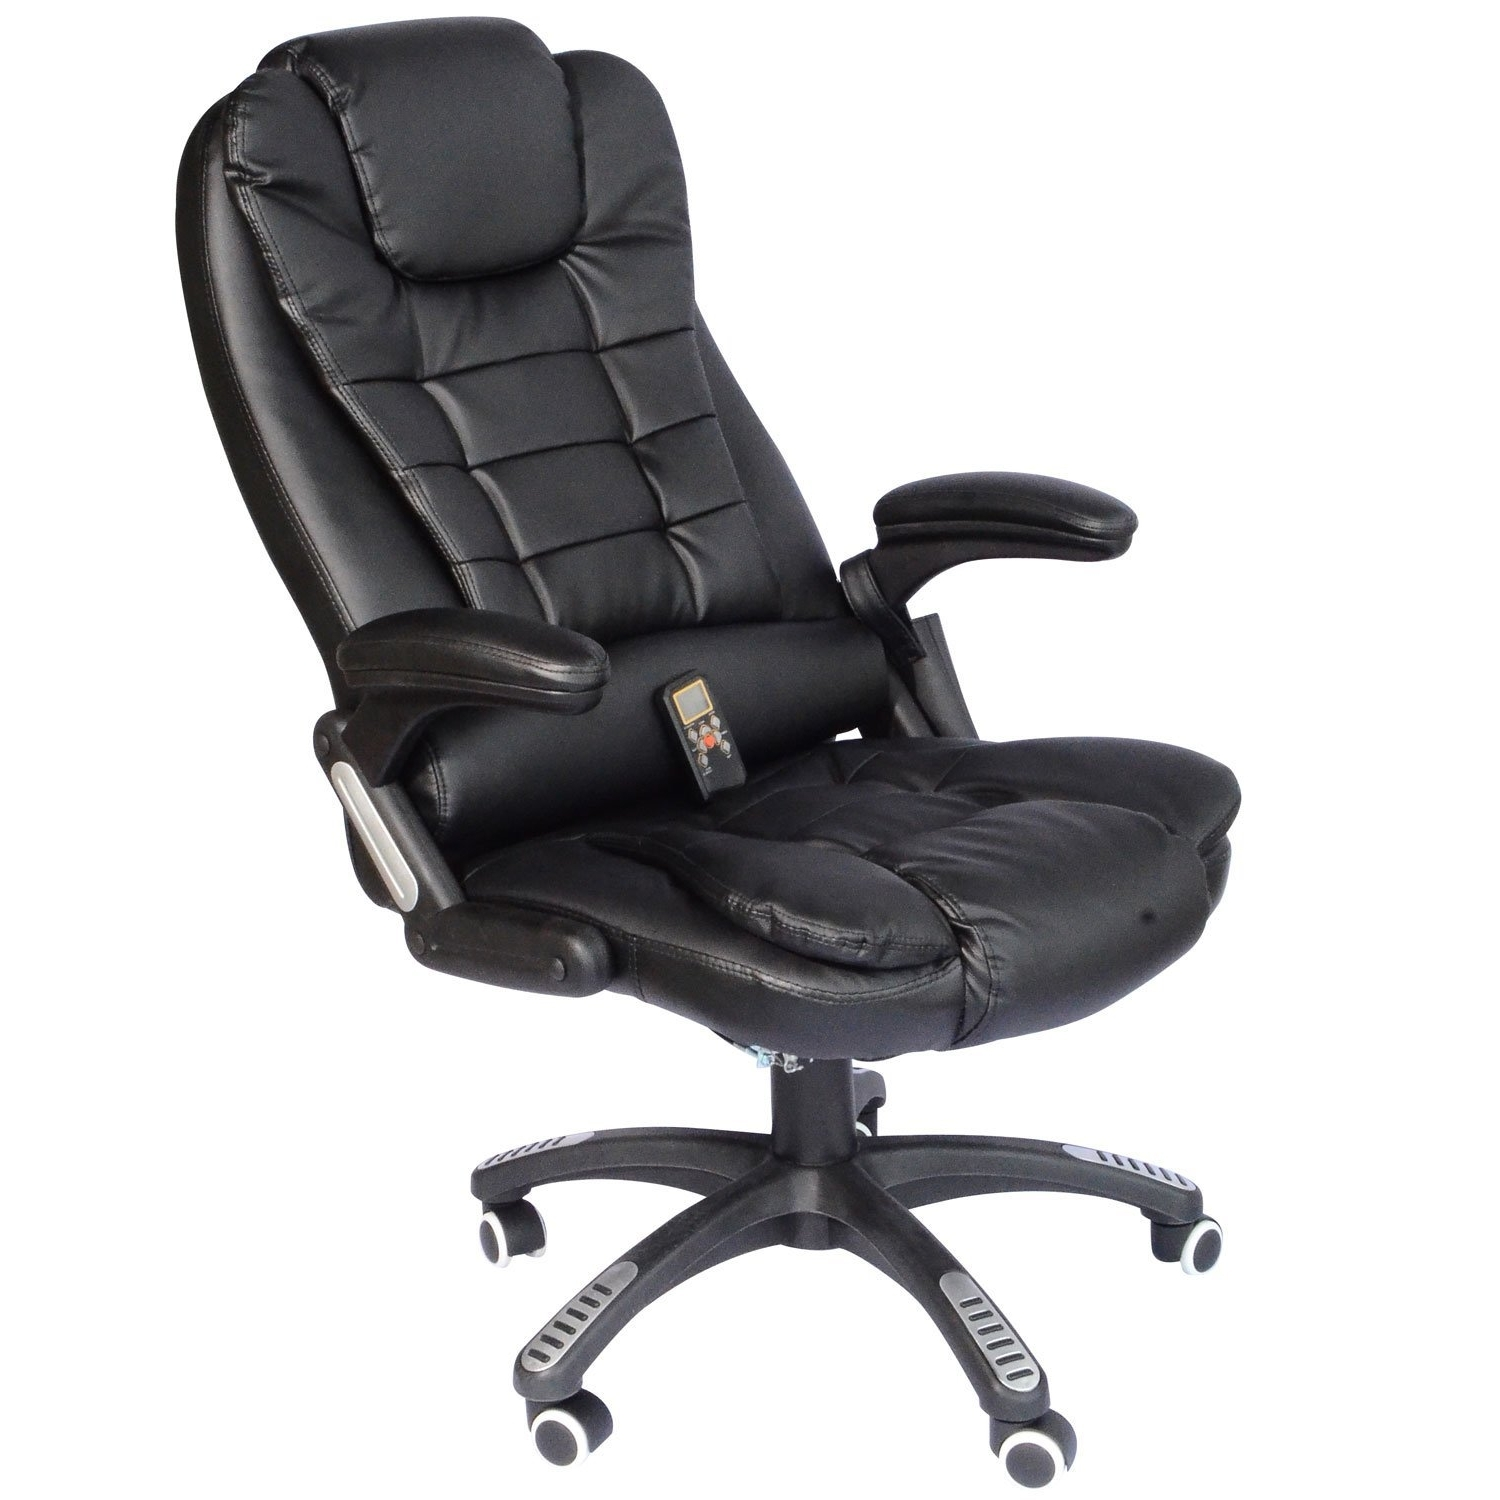 Favorite Executive Office Chairs With Shiatsu Massager With Regard To Hydro Massage Chair (43 Photos) (View 19 of 20)